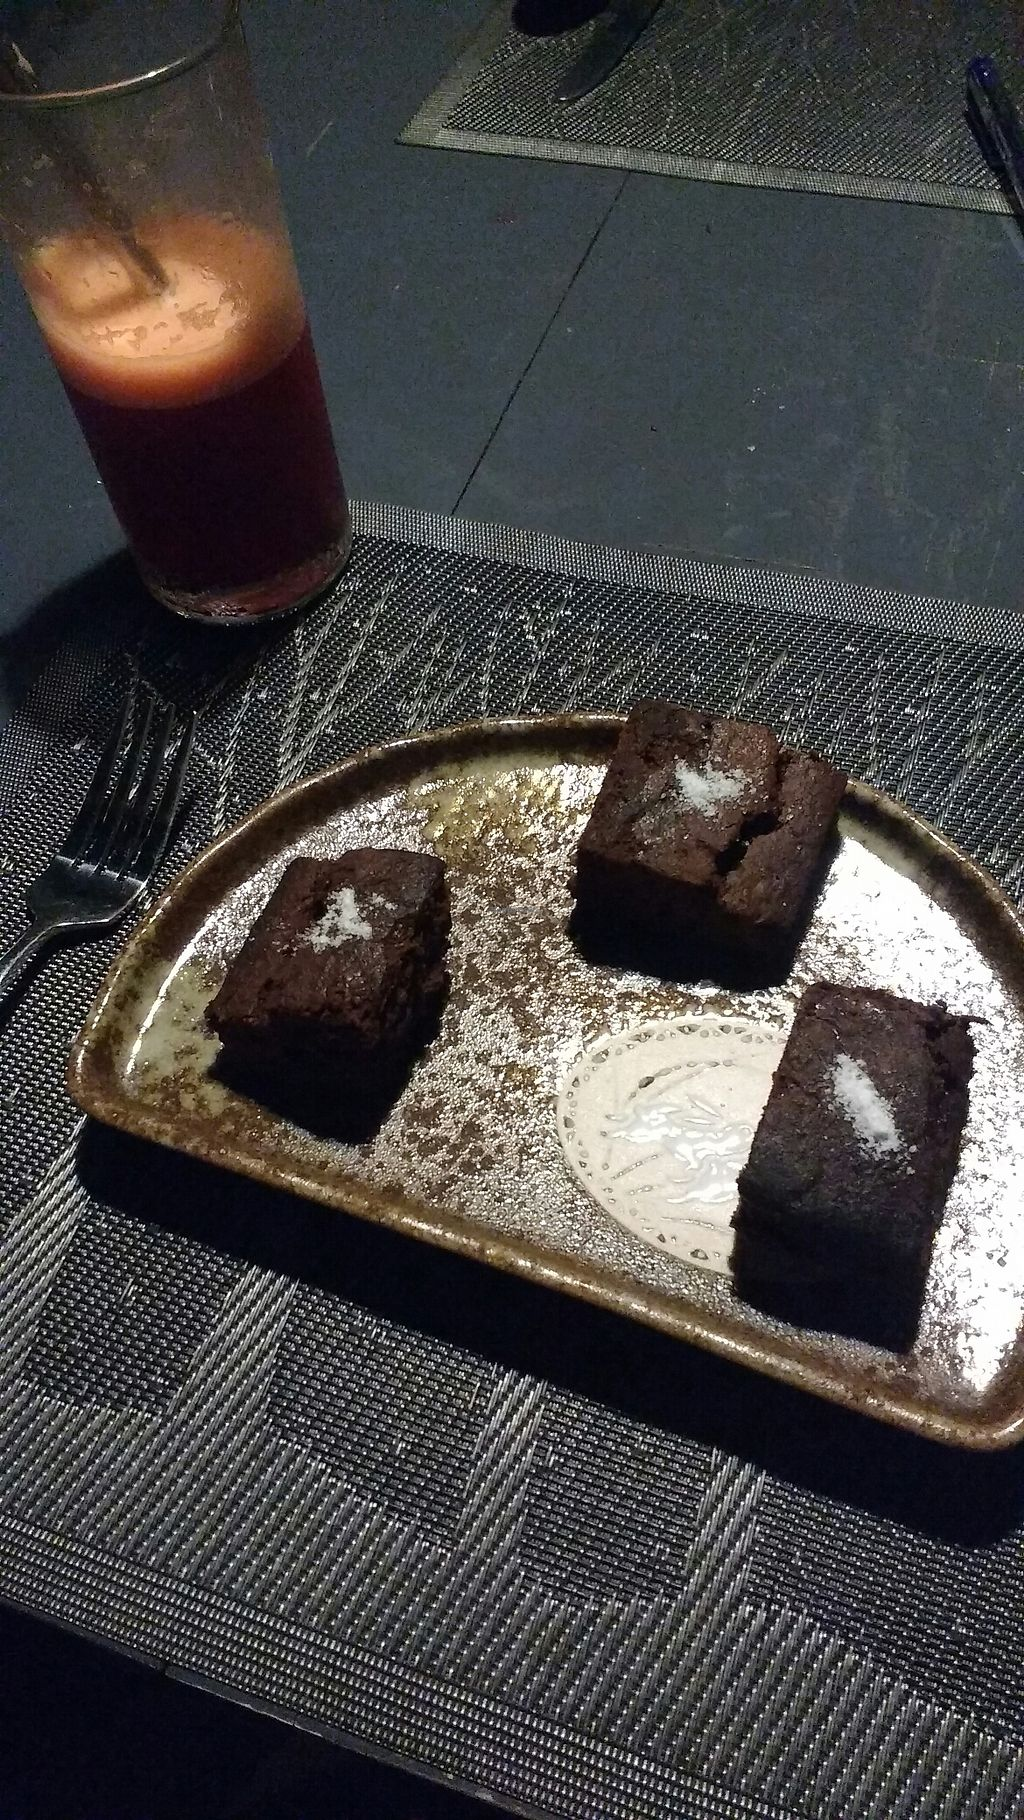 """Photo of CLOSED: Banlle Vegetarian Restaurant  by <a href=""""/members/profile/Anouk1121"""">Anouk1121</a> <br/>vegan brownies <br/> December 18, 2017  - <a href='/contact/abuse/image/61795/336909'>Report</a>"""